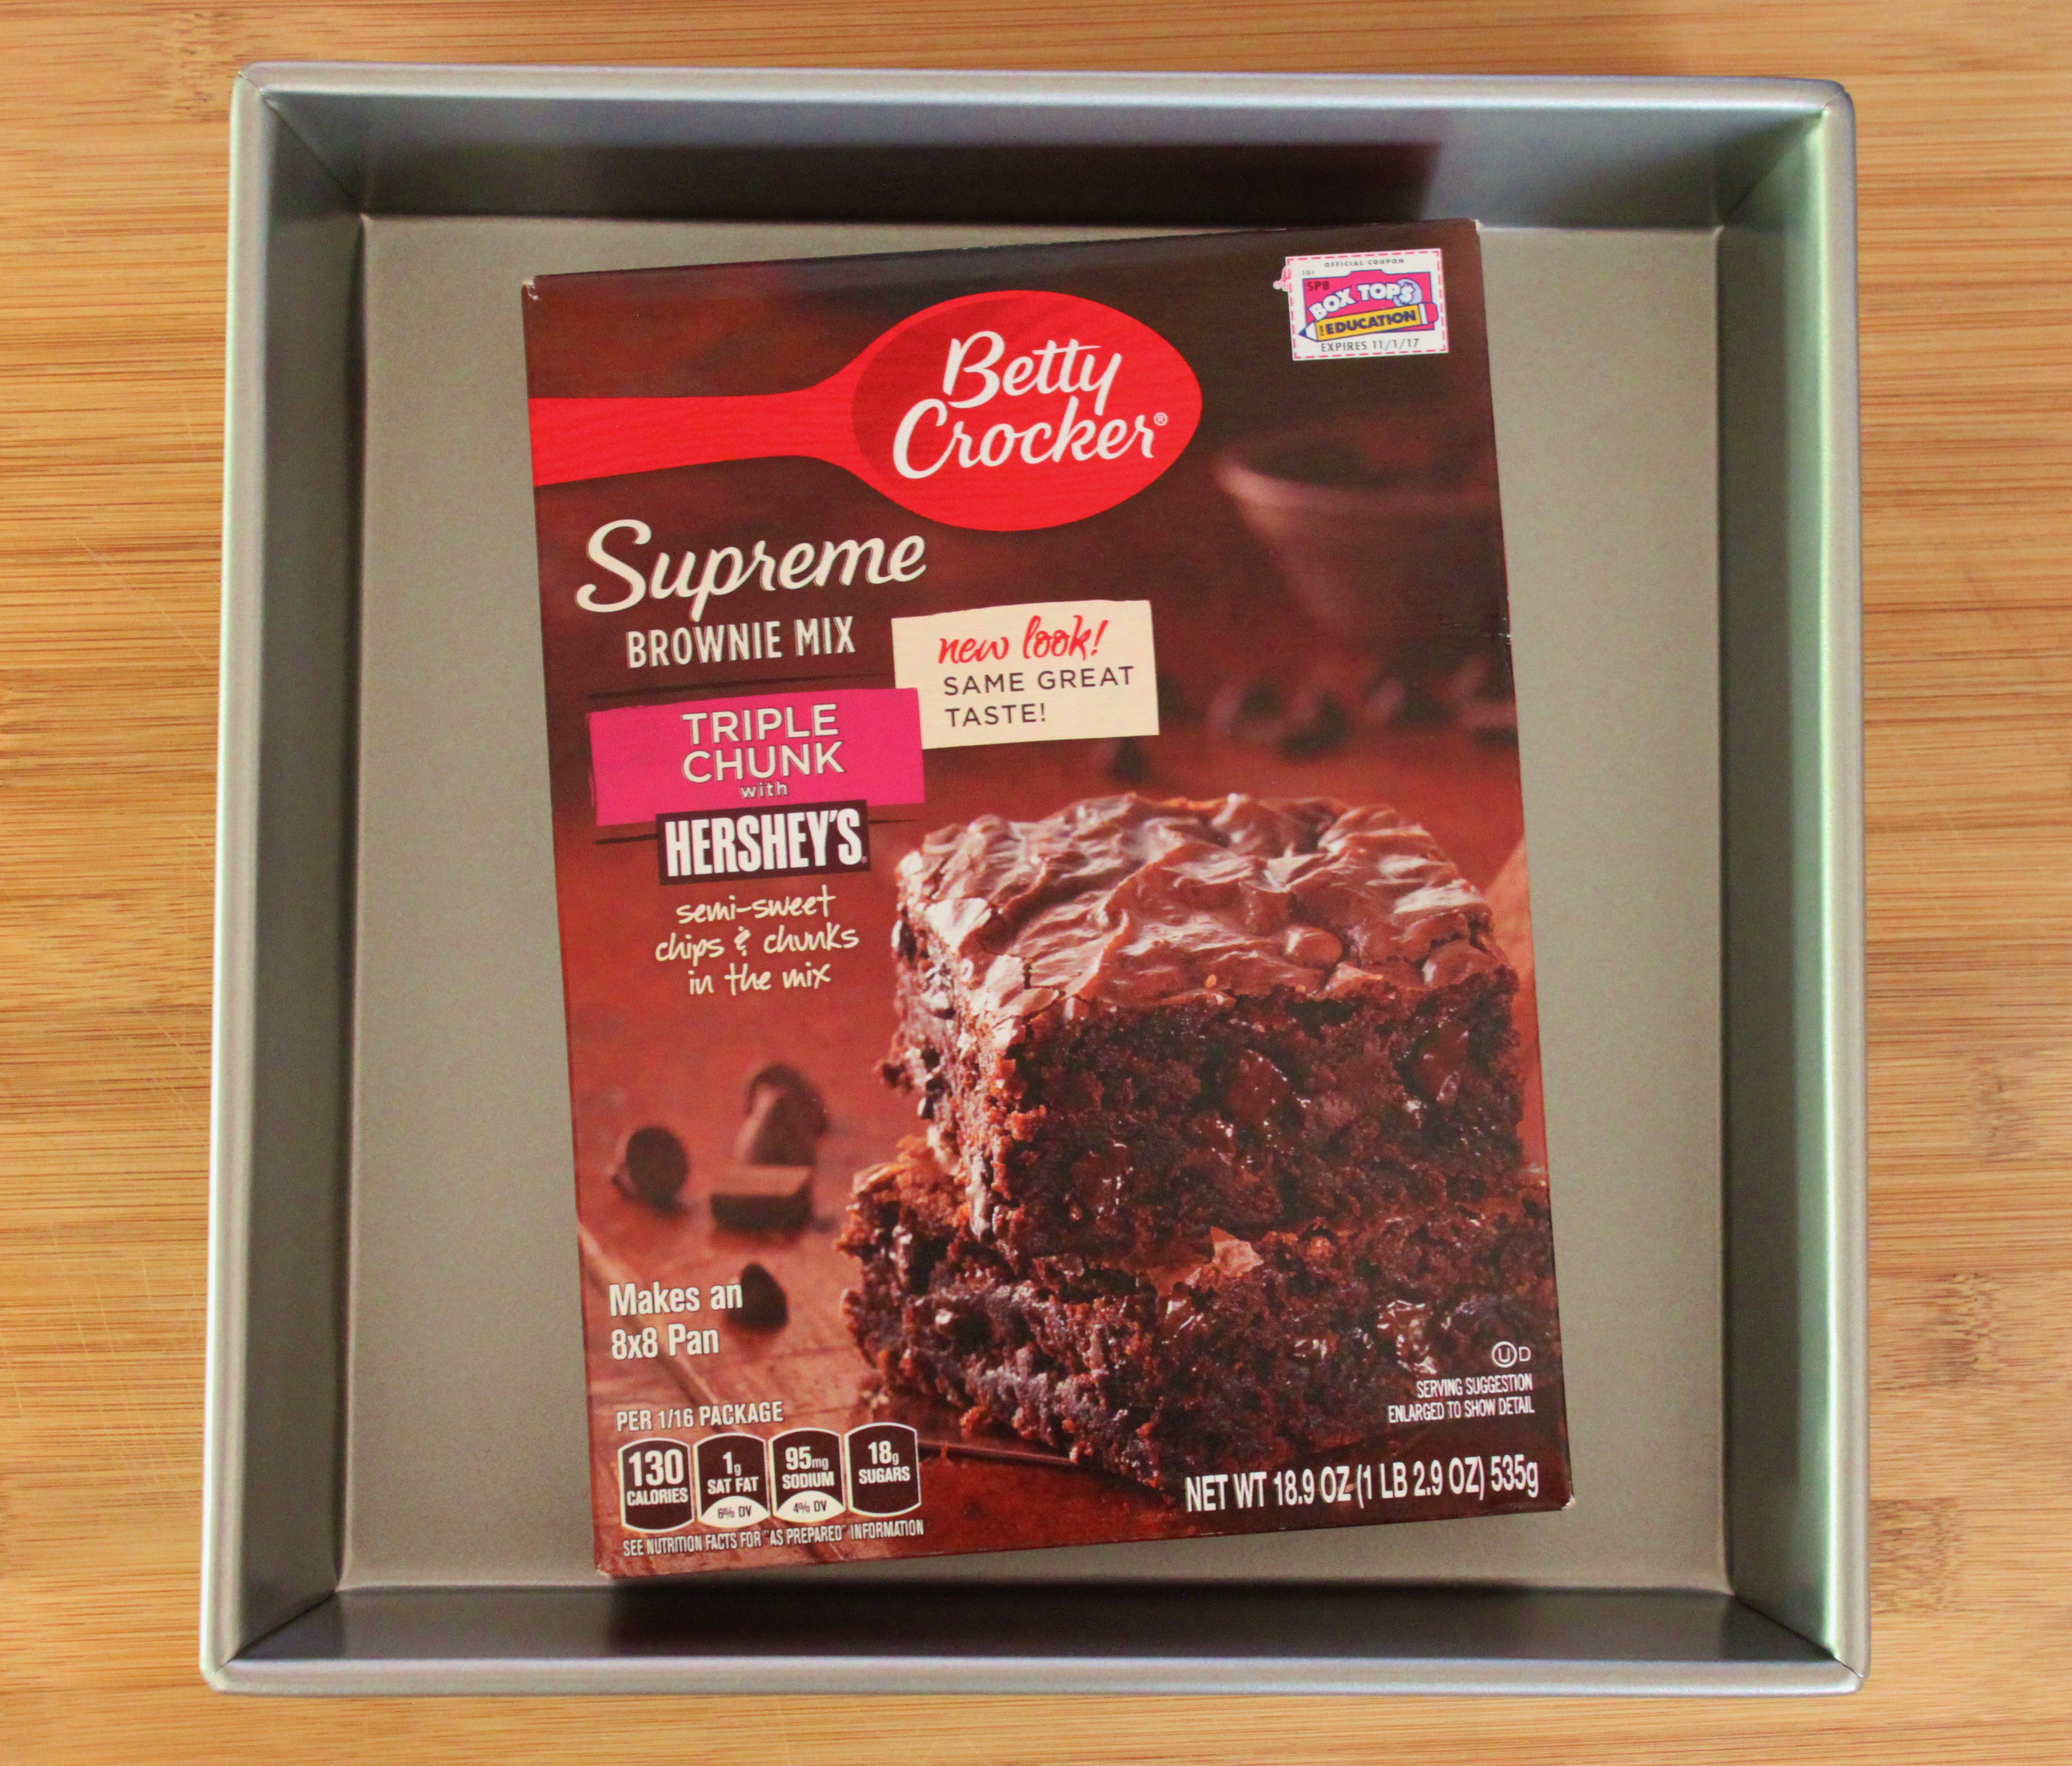 Betty Crocker Supreme Brownie